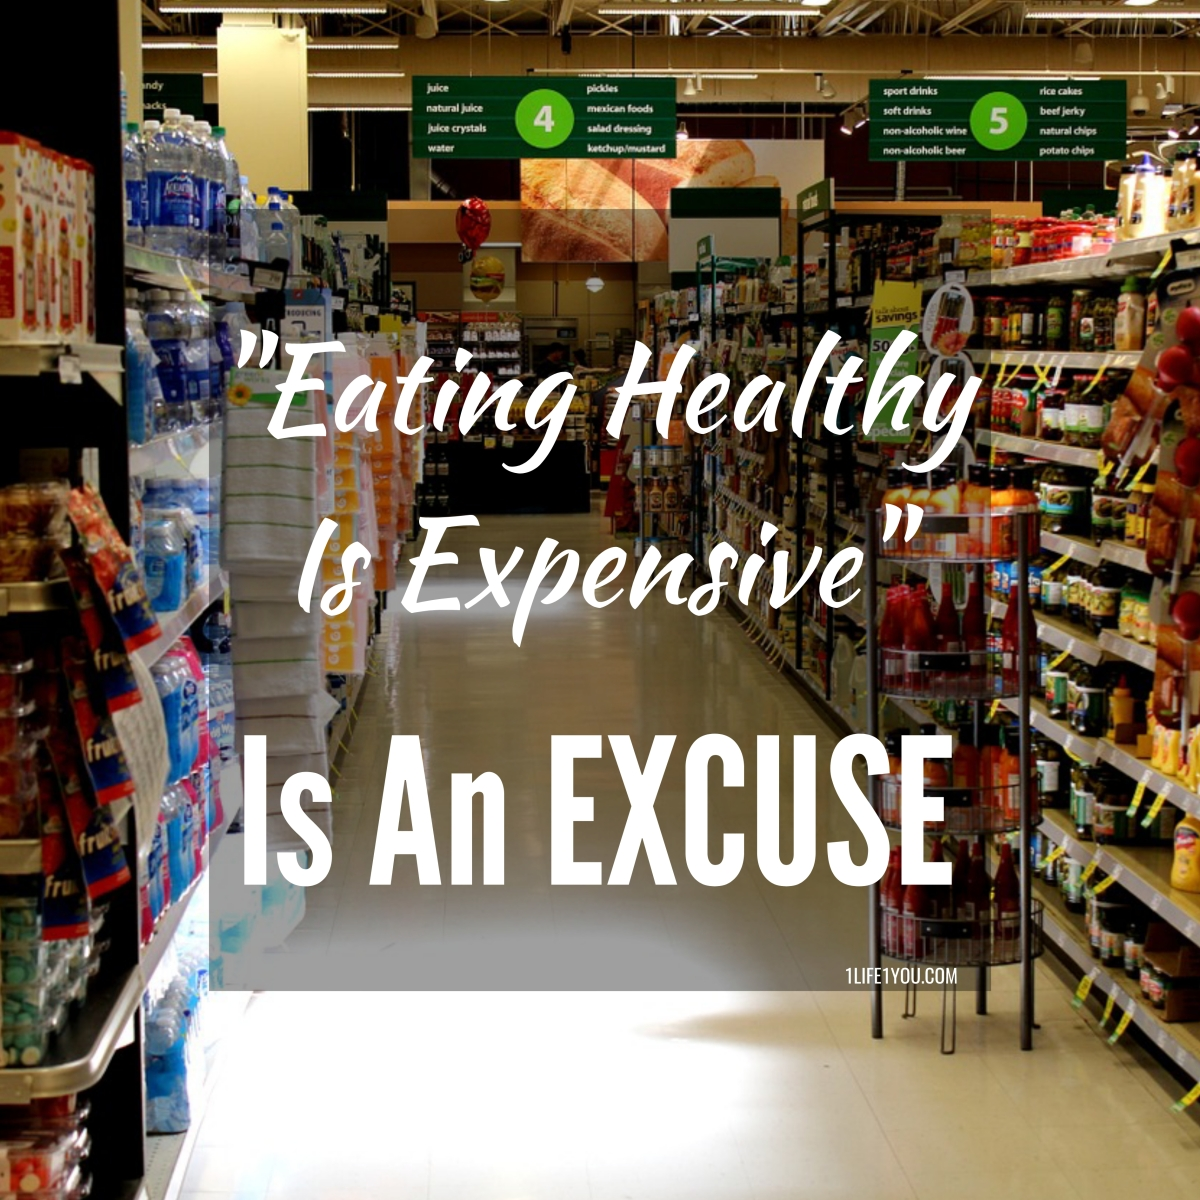 Eating Healthy Is Expensive Is An Excuse